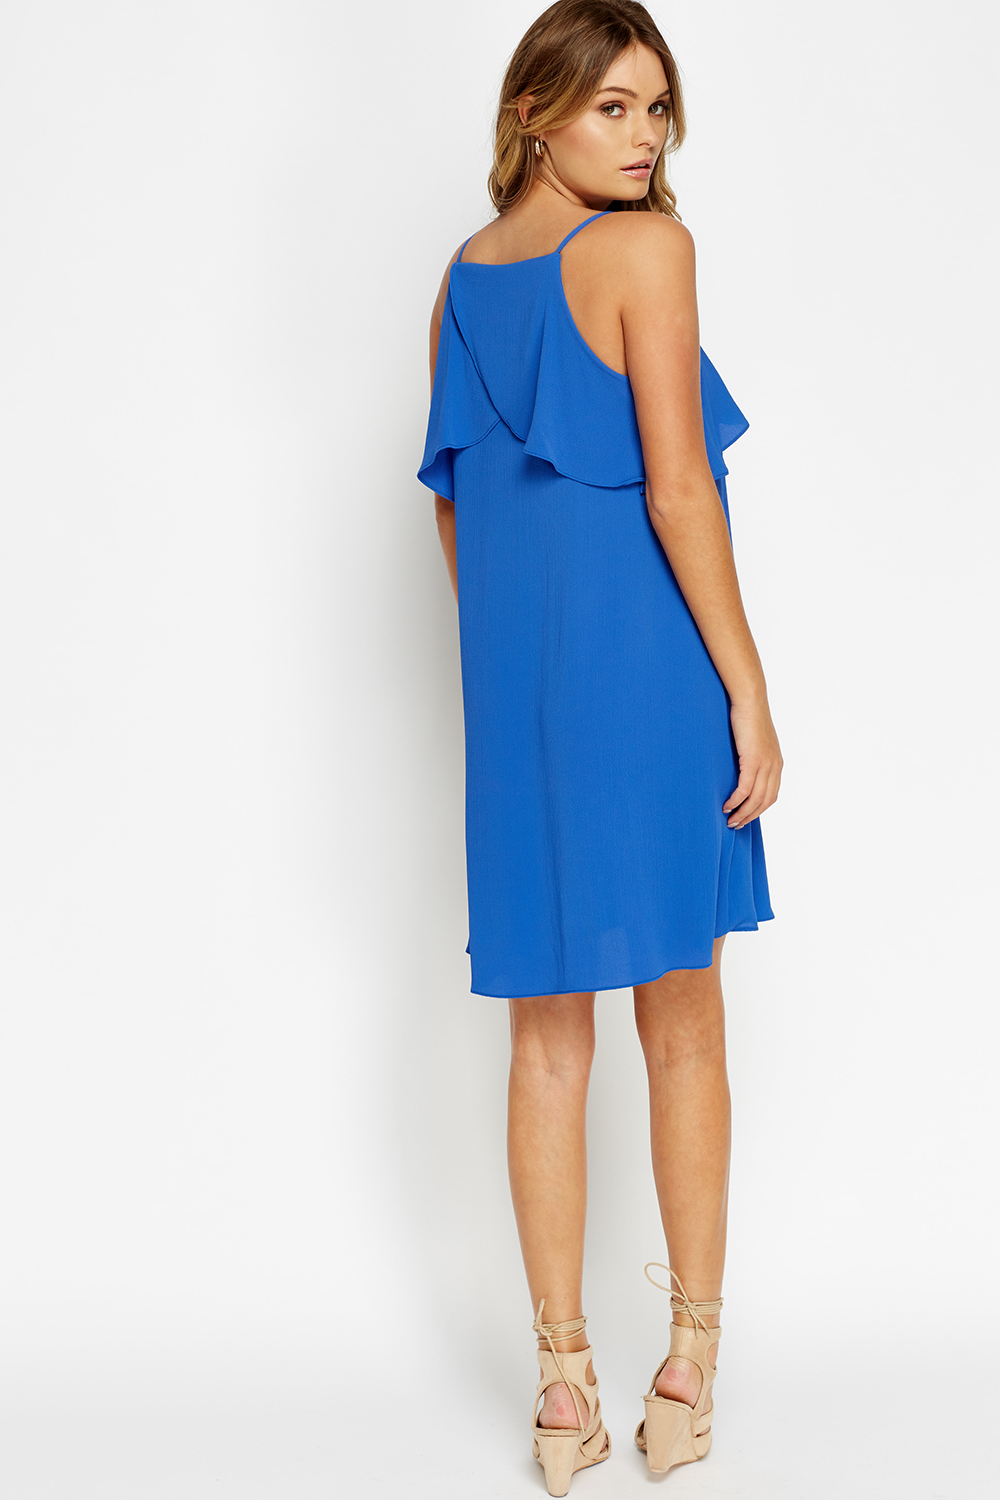 Flare Overlay Bright Blue Dress - Just £5